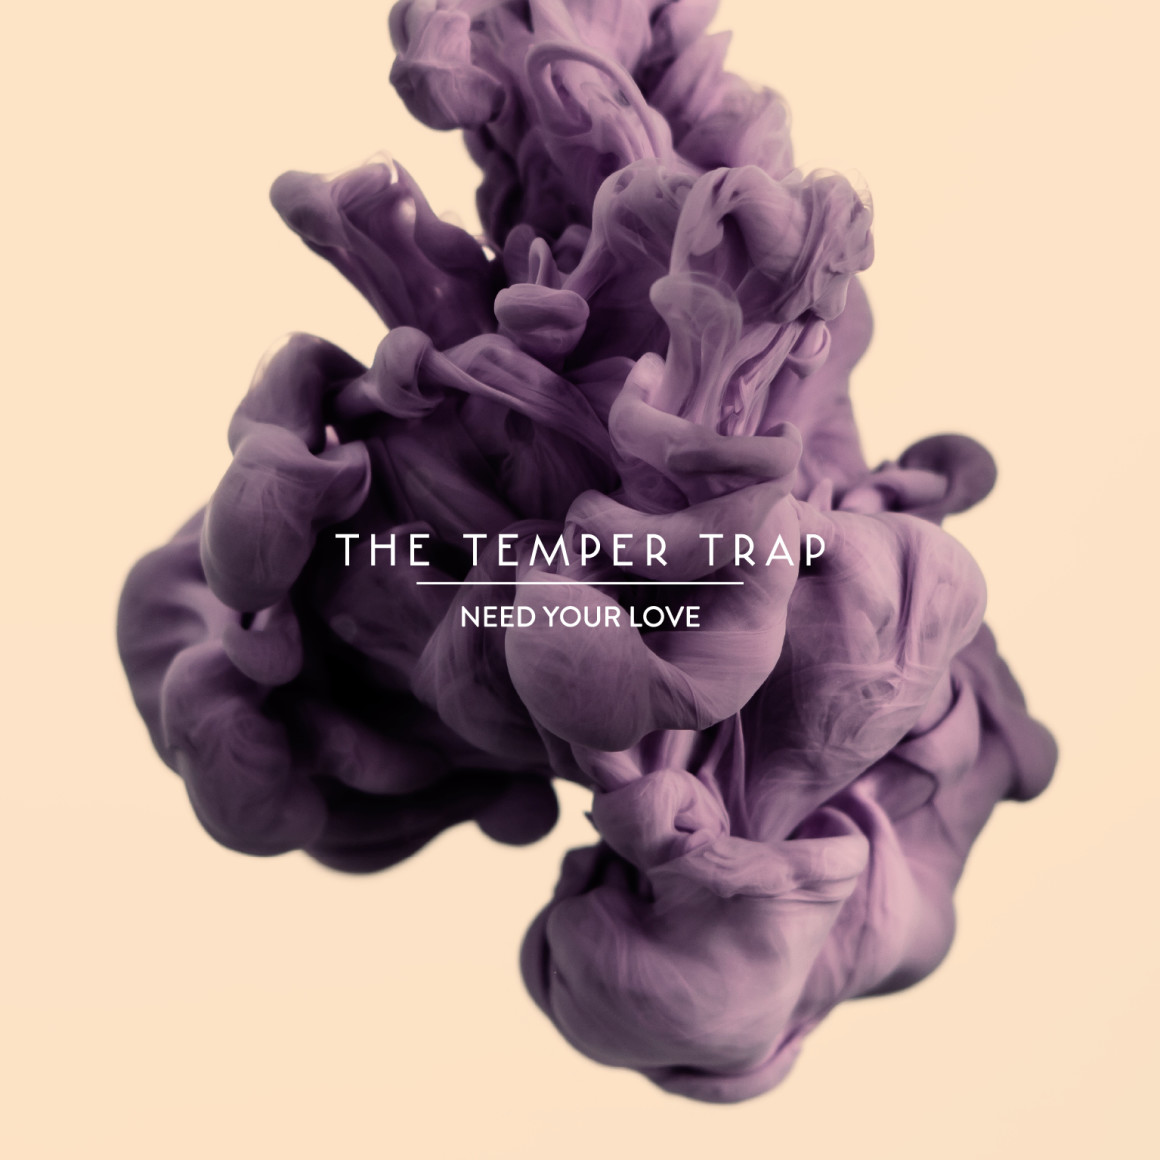 The+Temper+Trap+Need+Your+Love